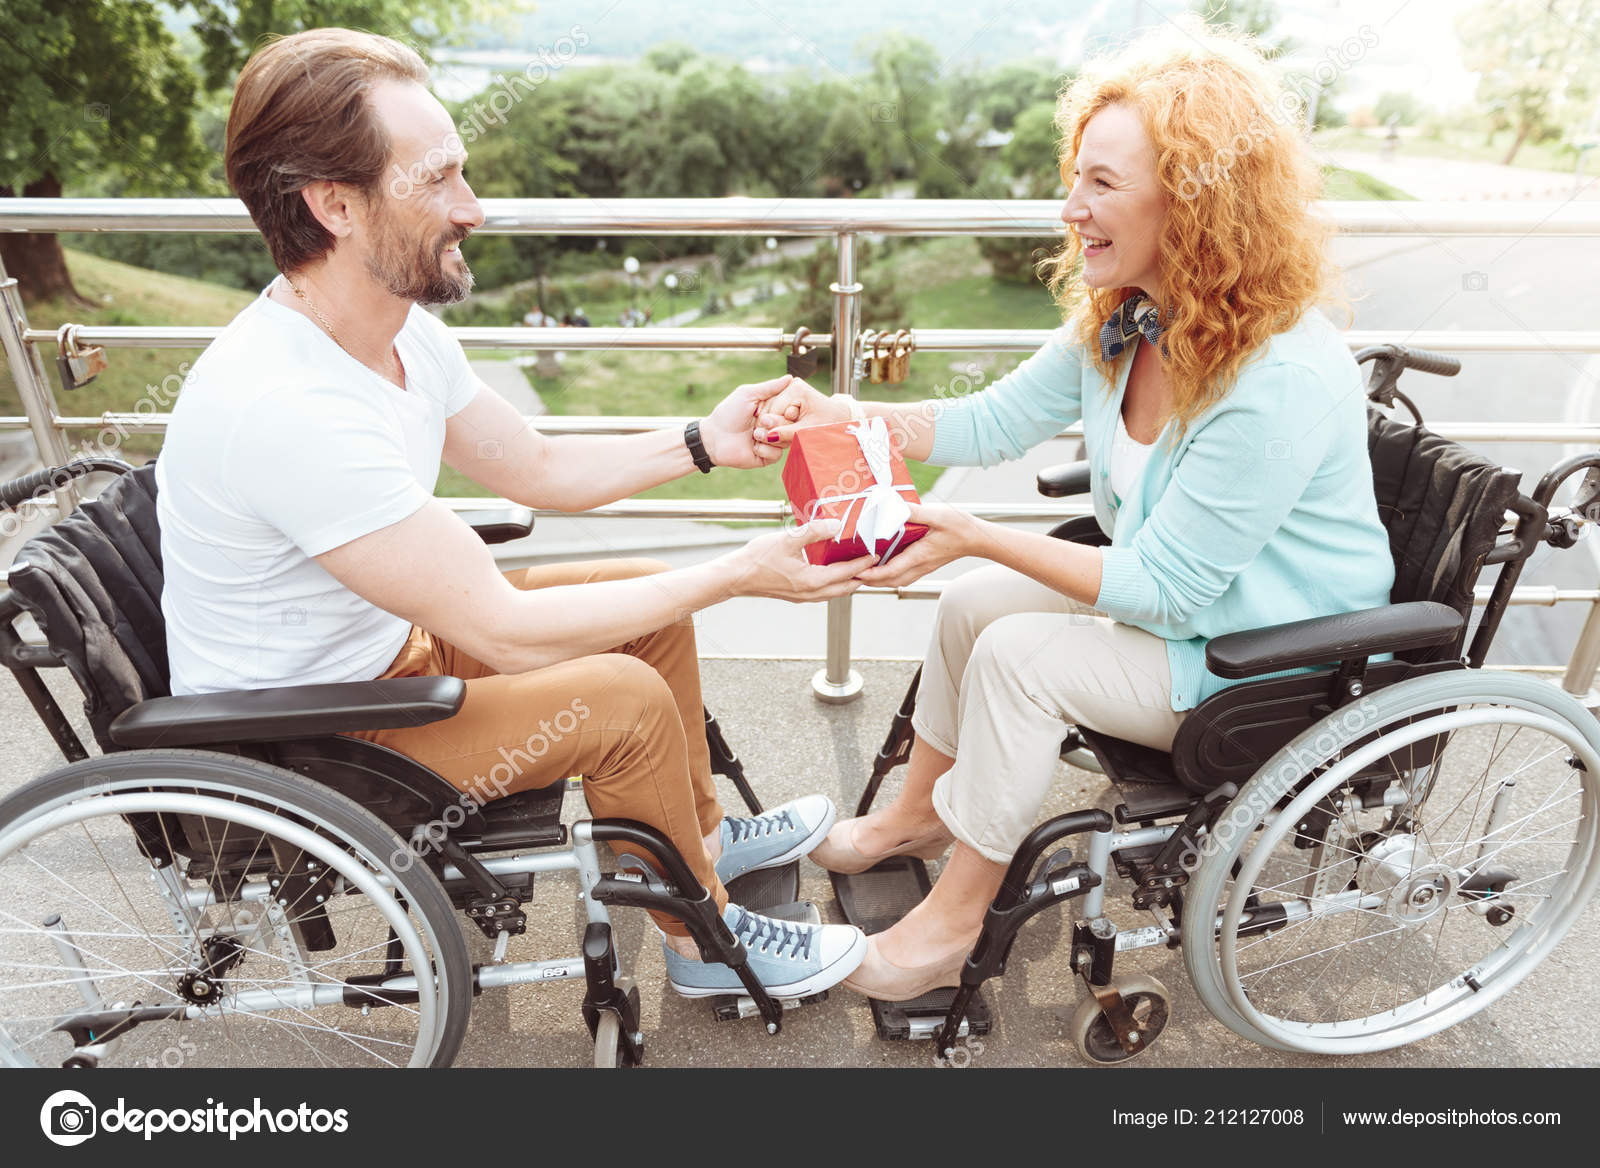 Harmonious Relations Side View Romantic Husband Wife Holding Hands